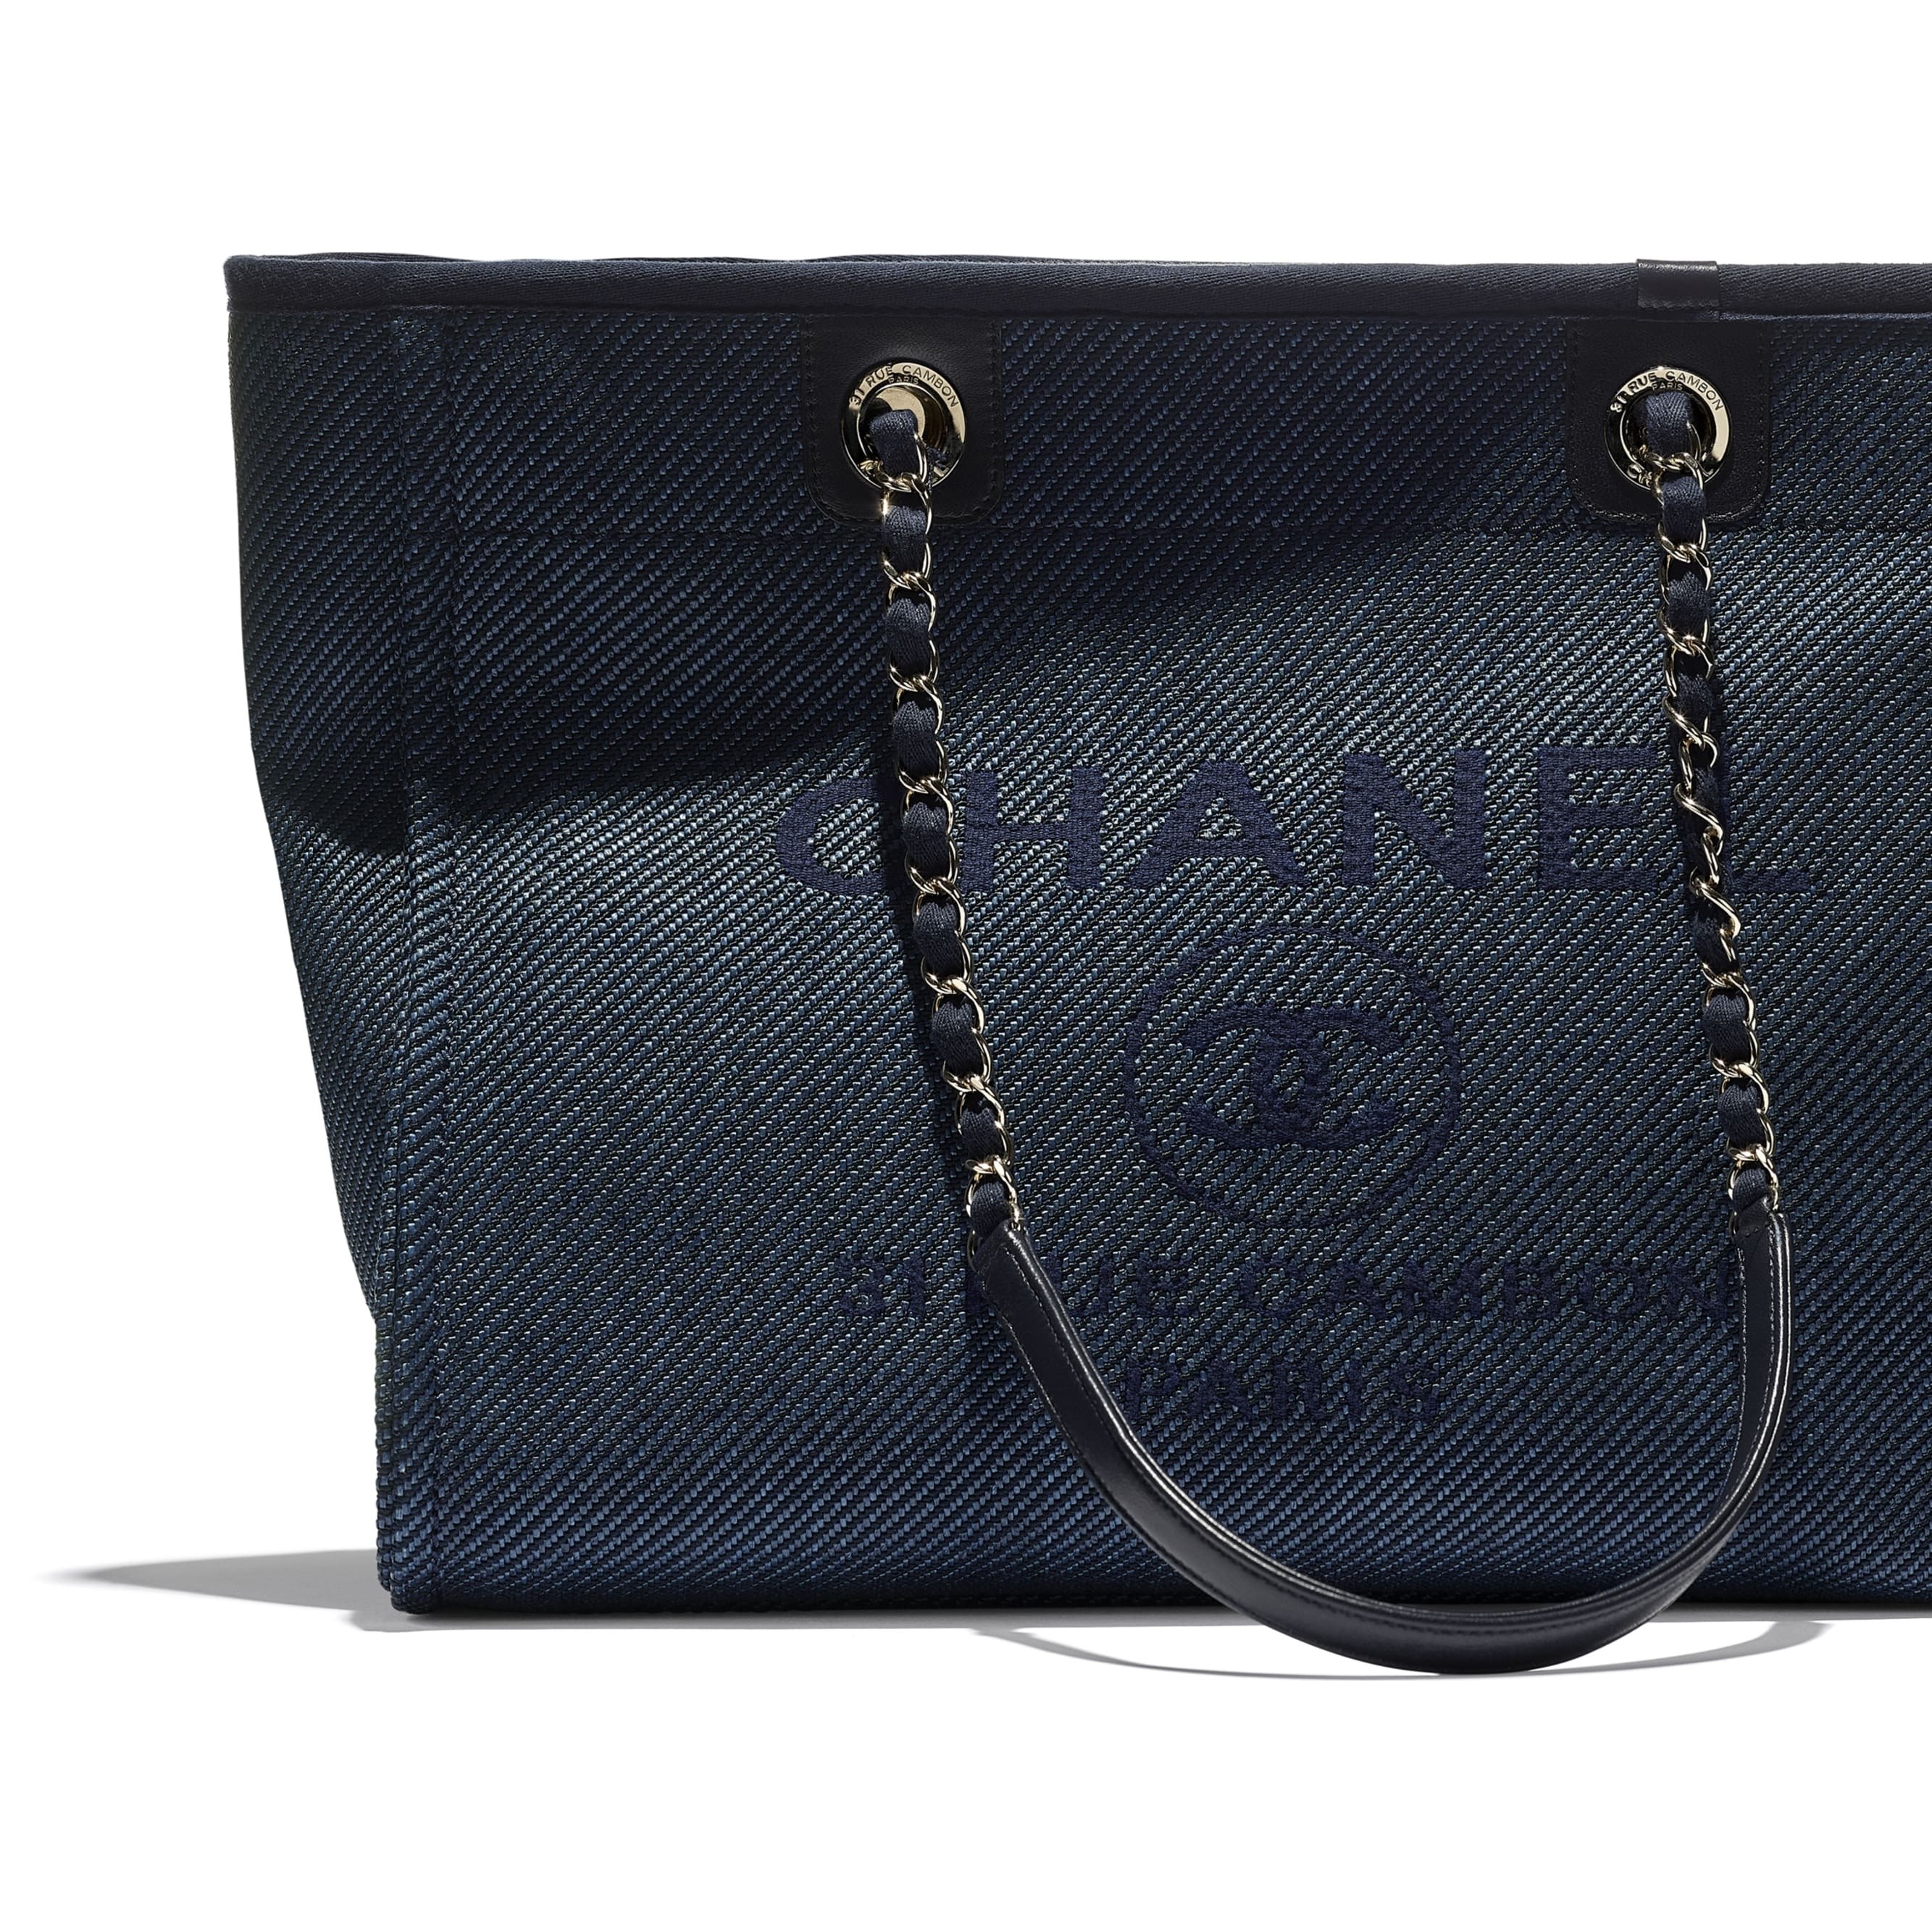 Shopping Bag - Navy Blue - Mixed Fibres, Calfskin & Gold-Tone Metal - CHANEL - Extra view - see standard sized version